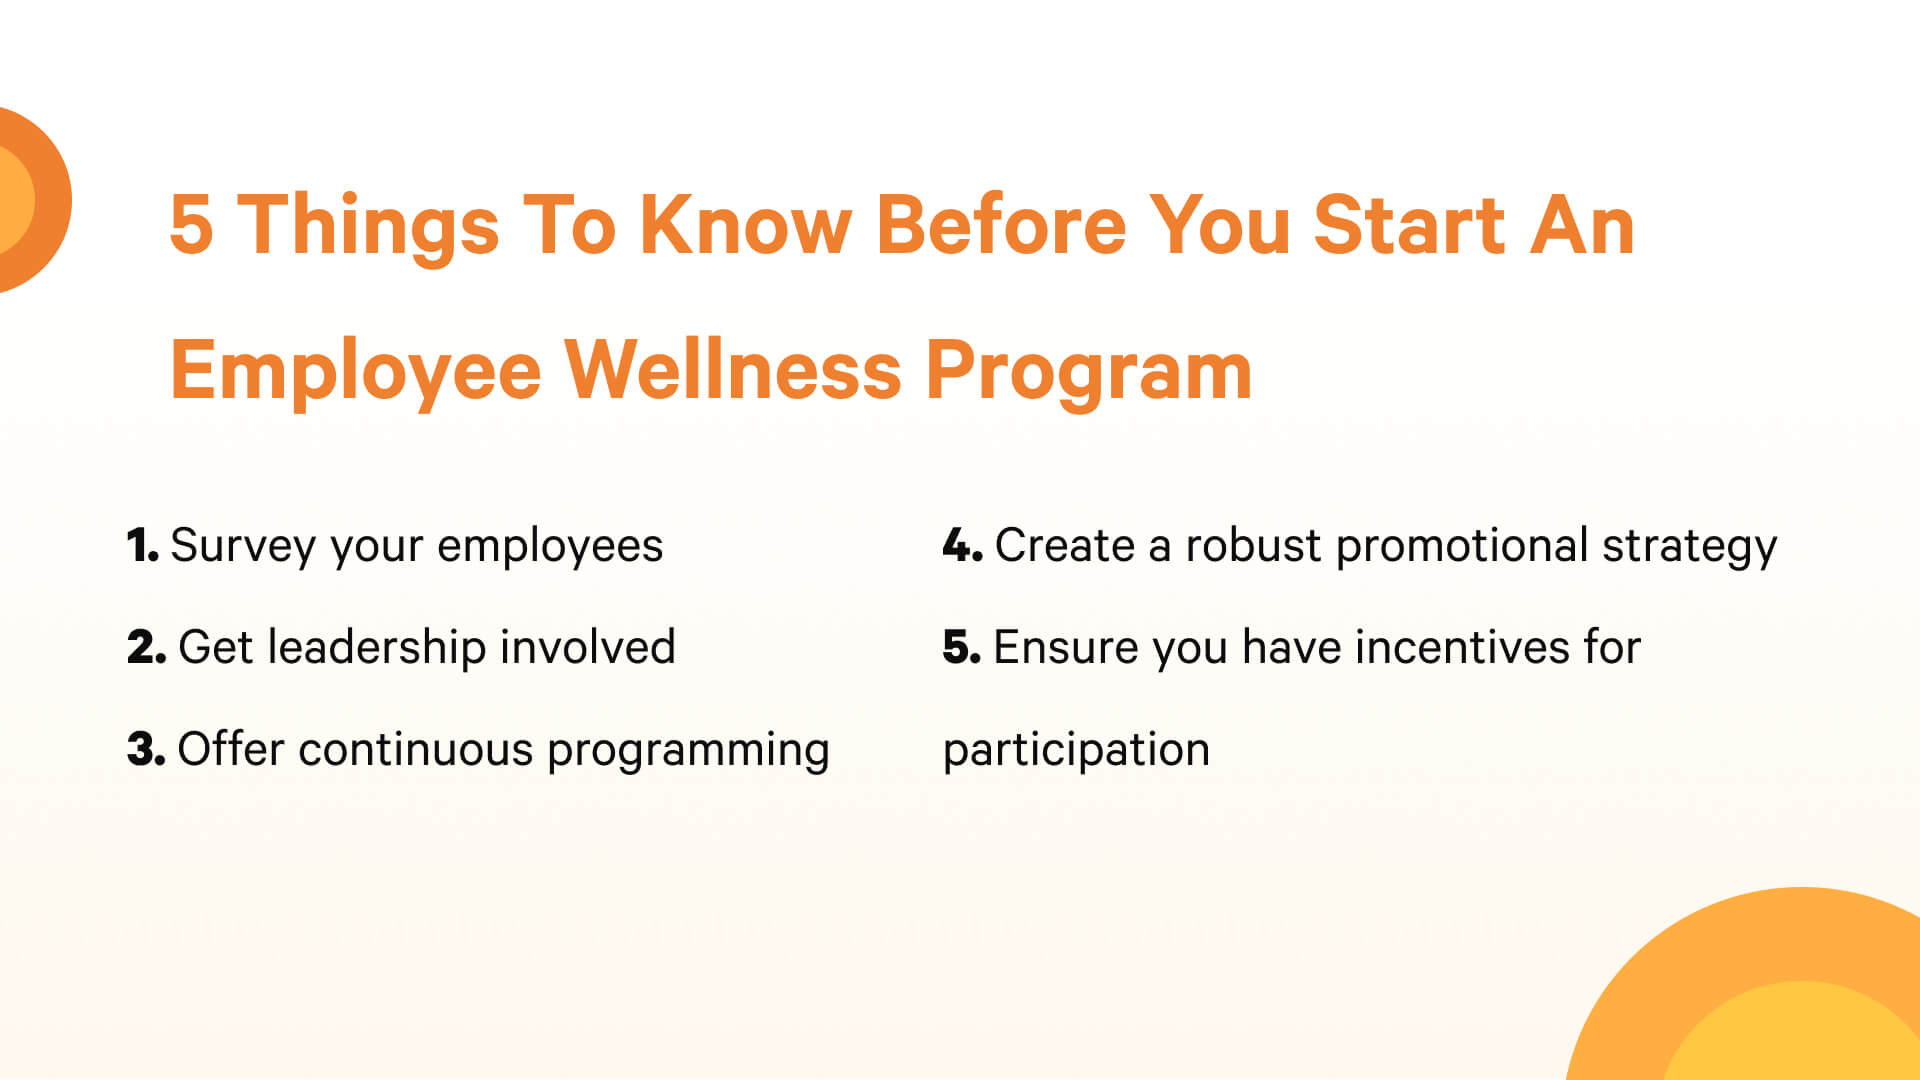 5 things to know before startin an employee wellness program.